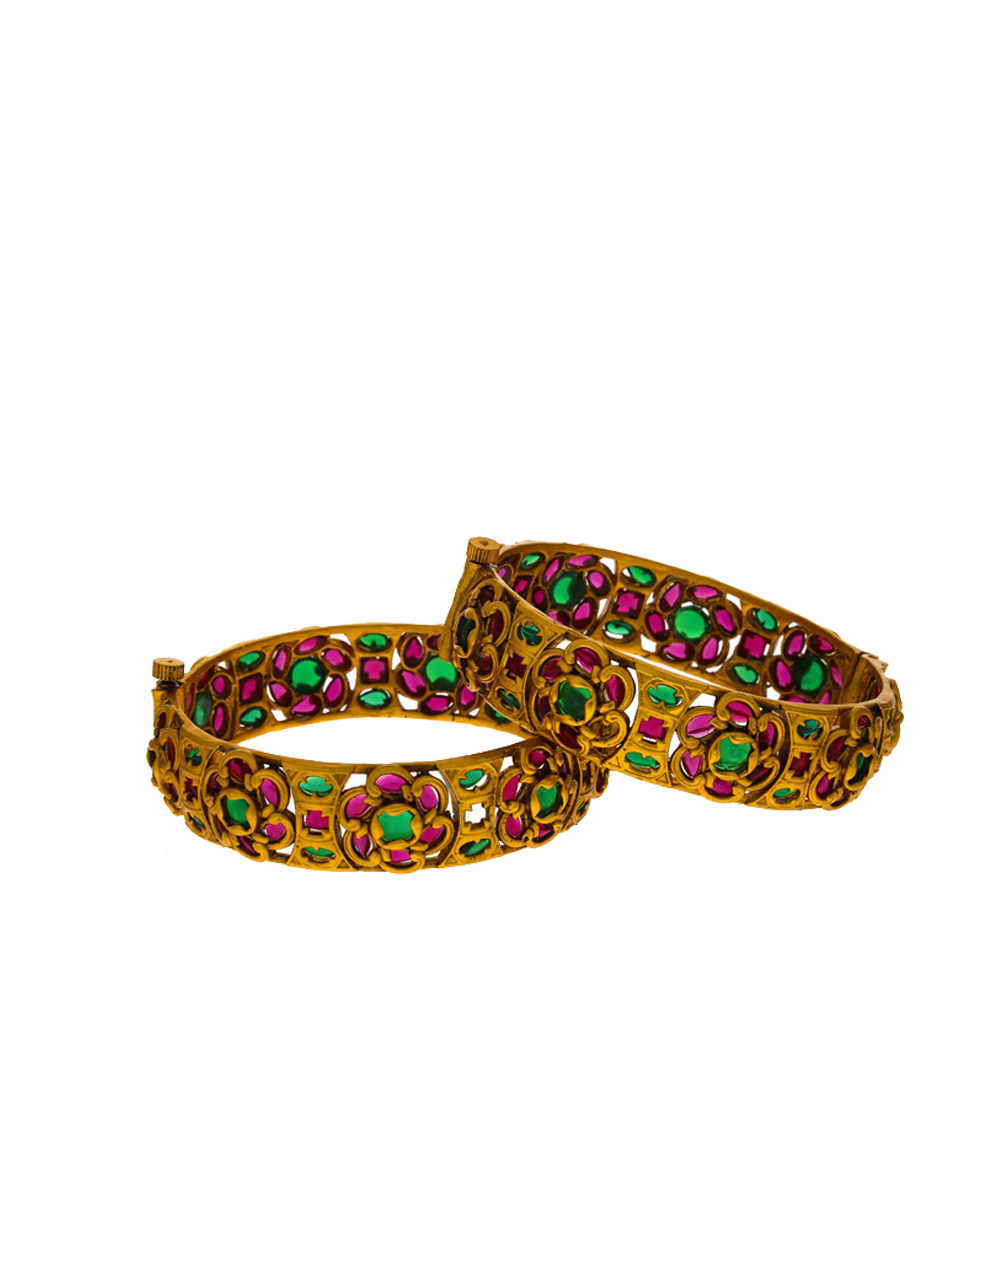 Fancy floral design decorated with colourful LCT stone bangles for women